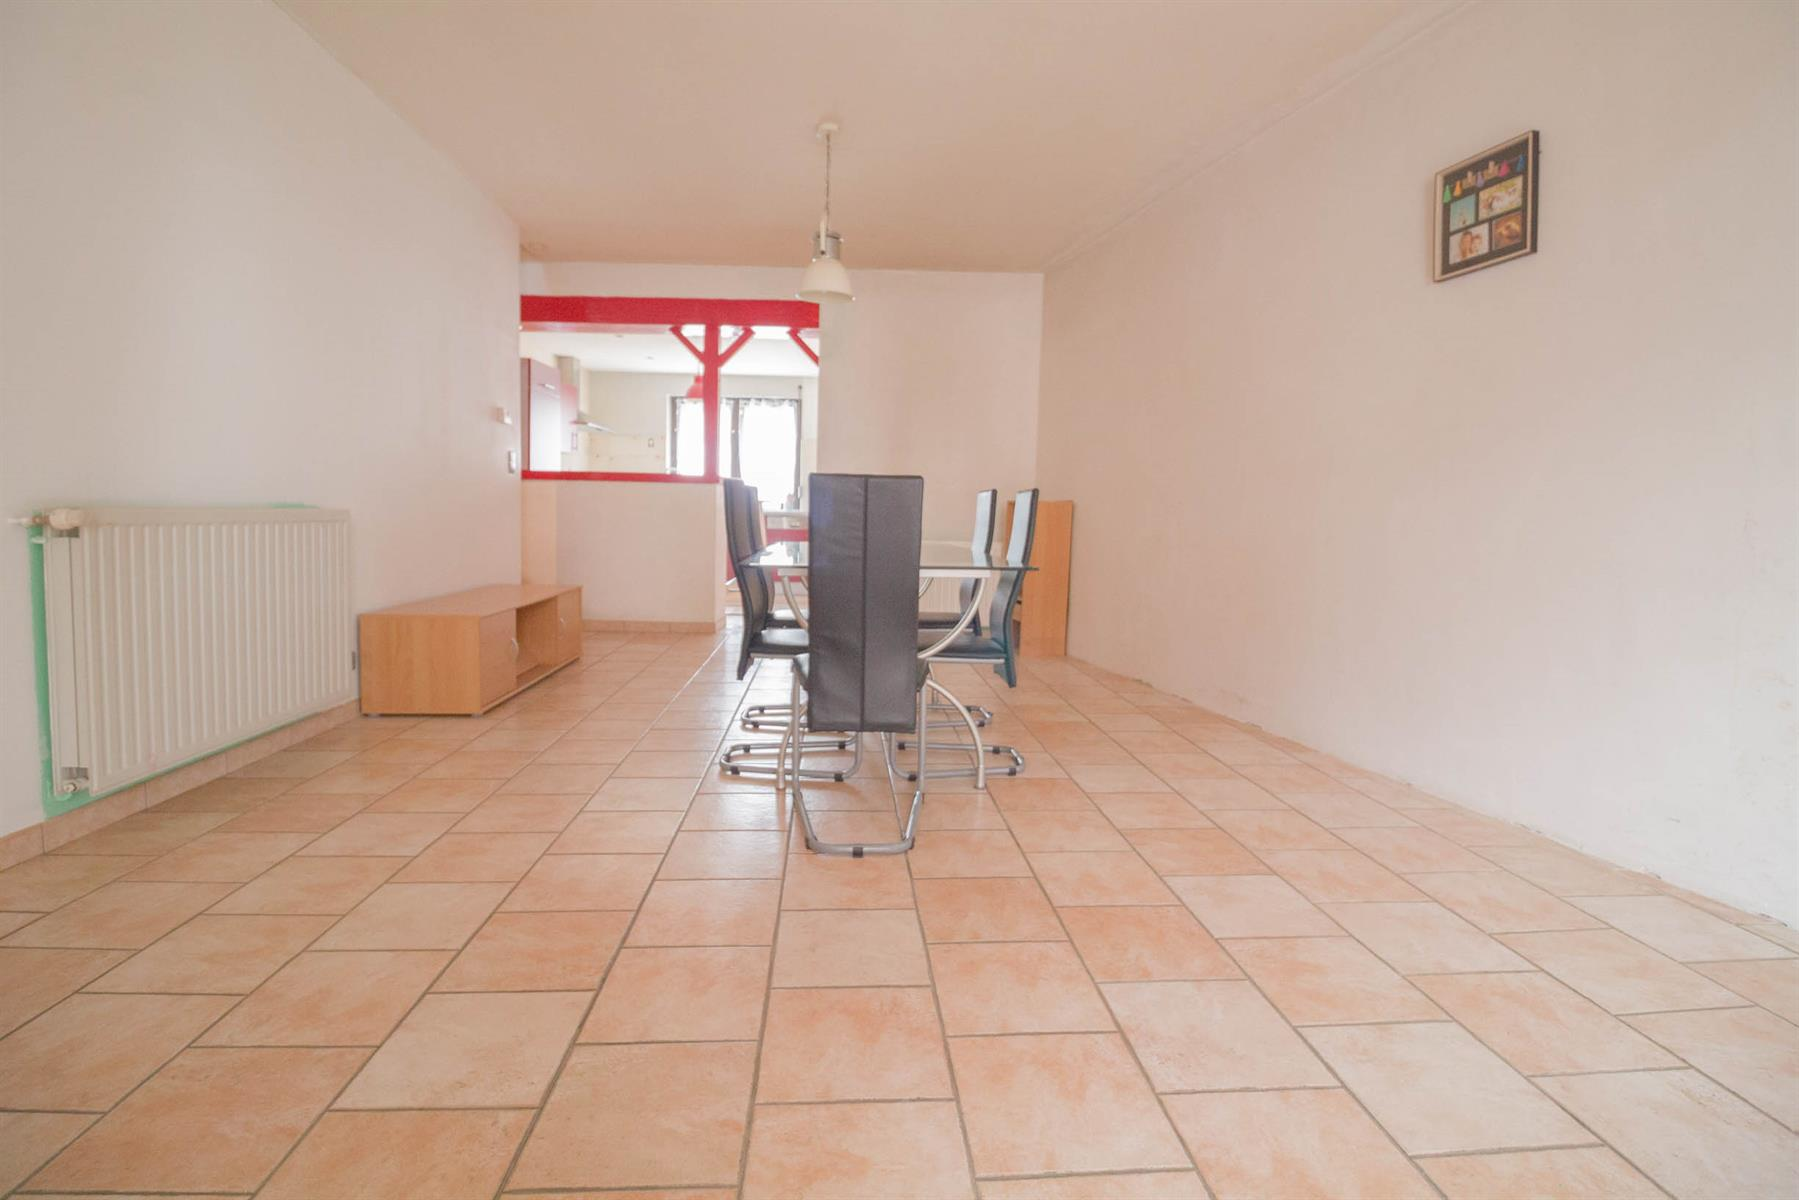 Maison - Courcelles (Trazegnies) - #4445047-2